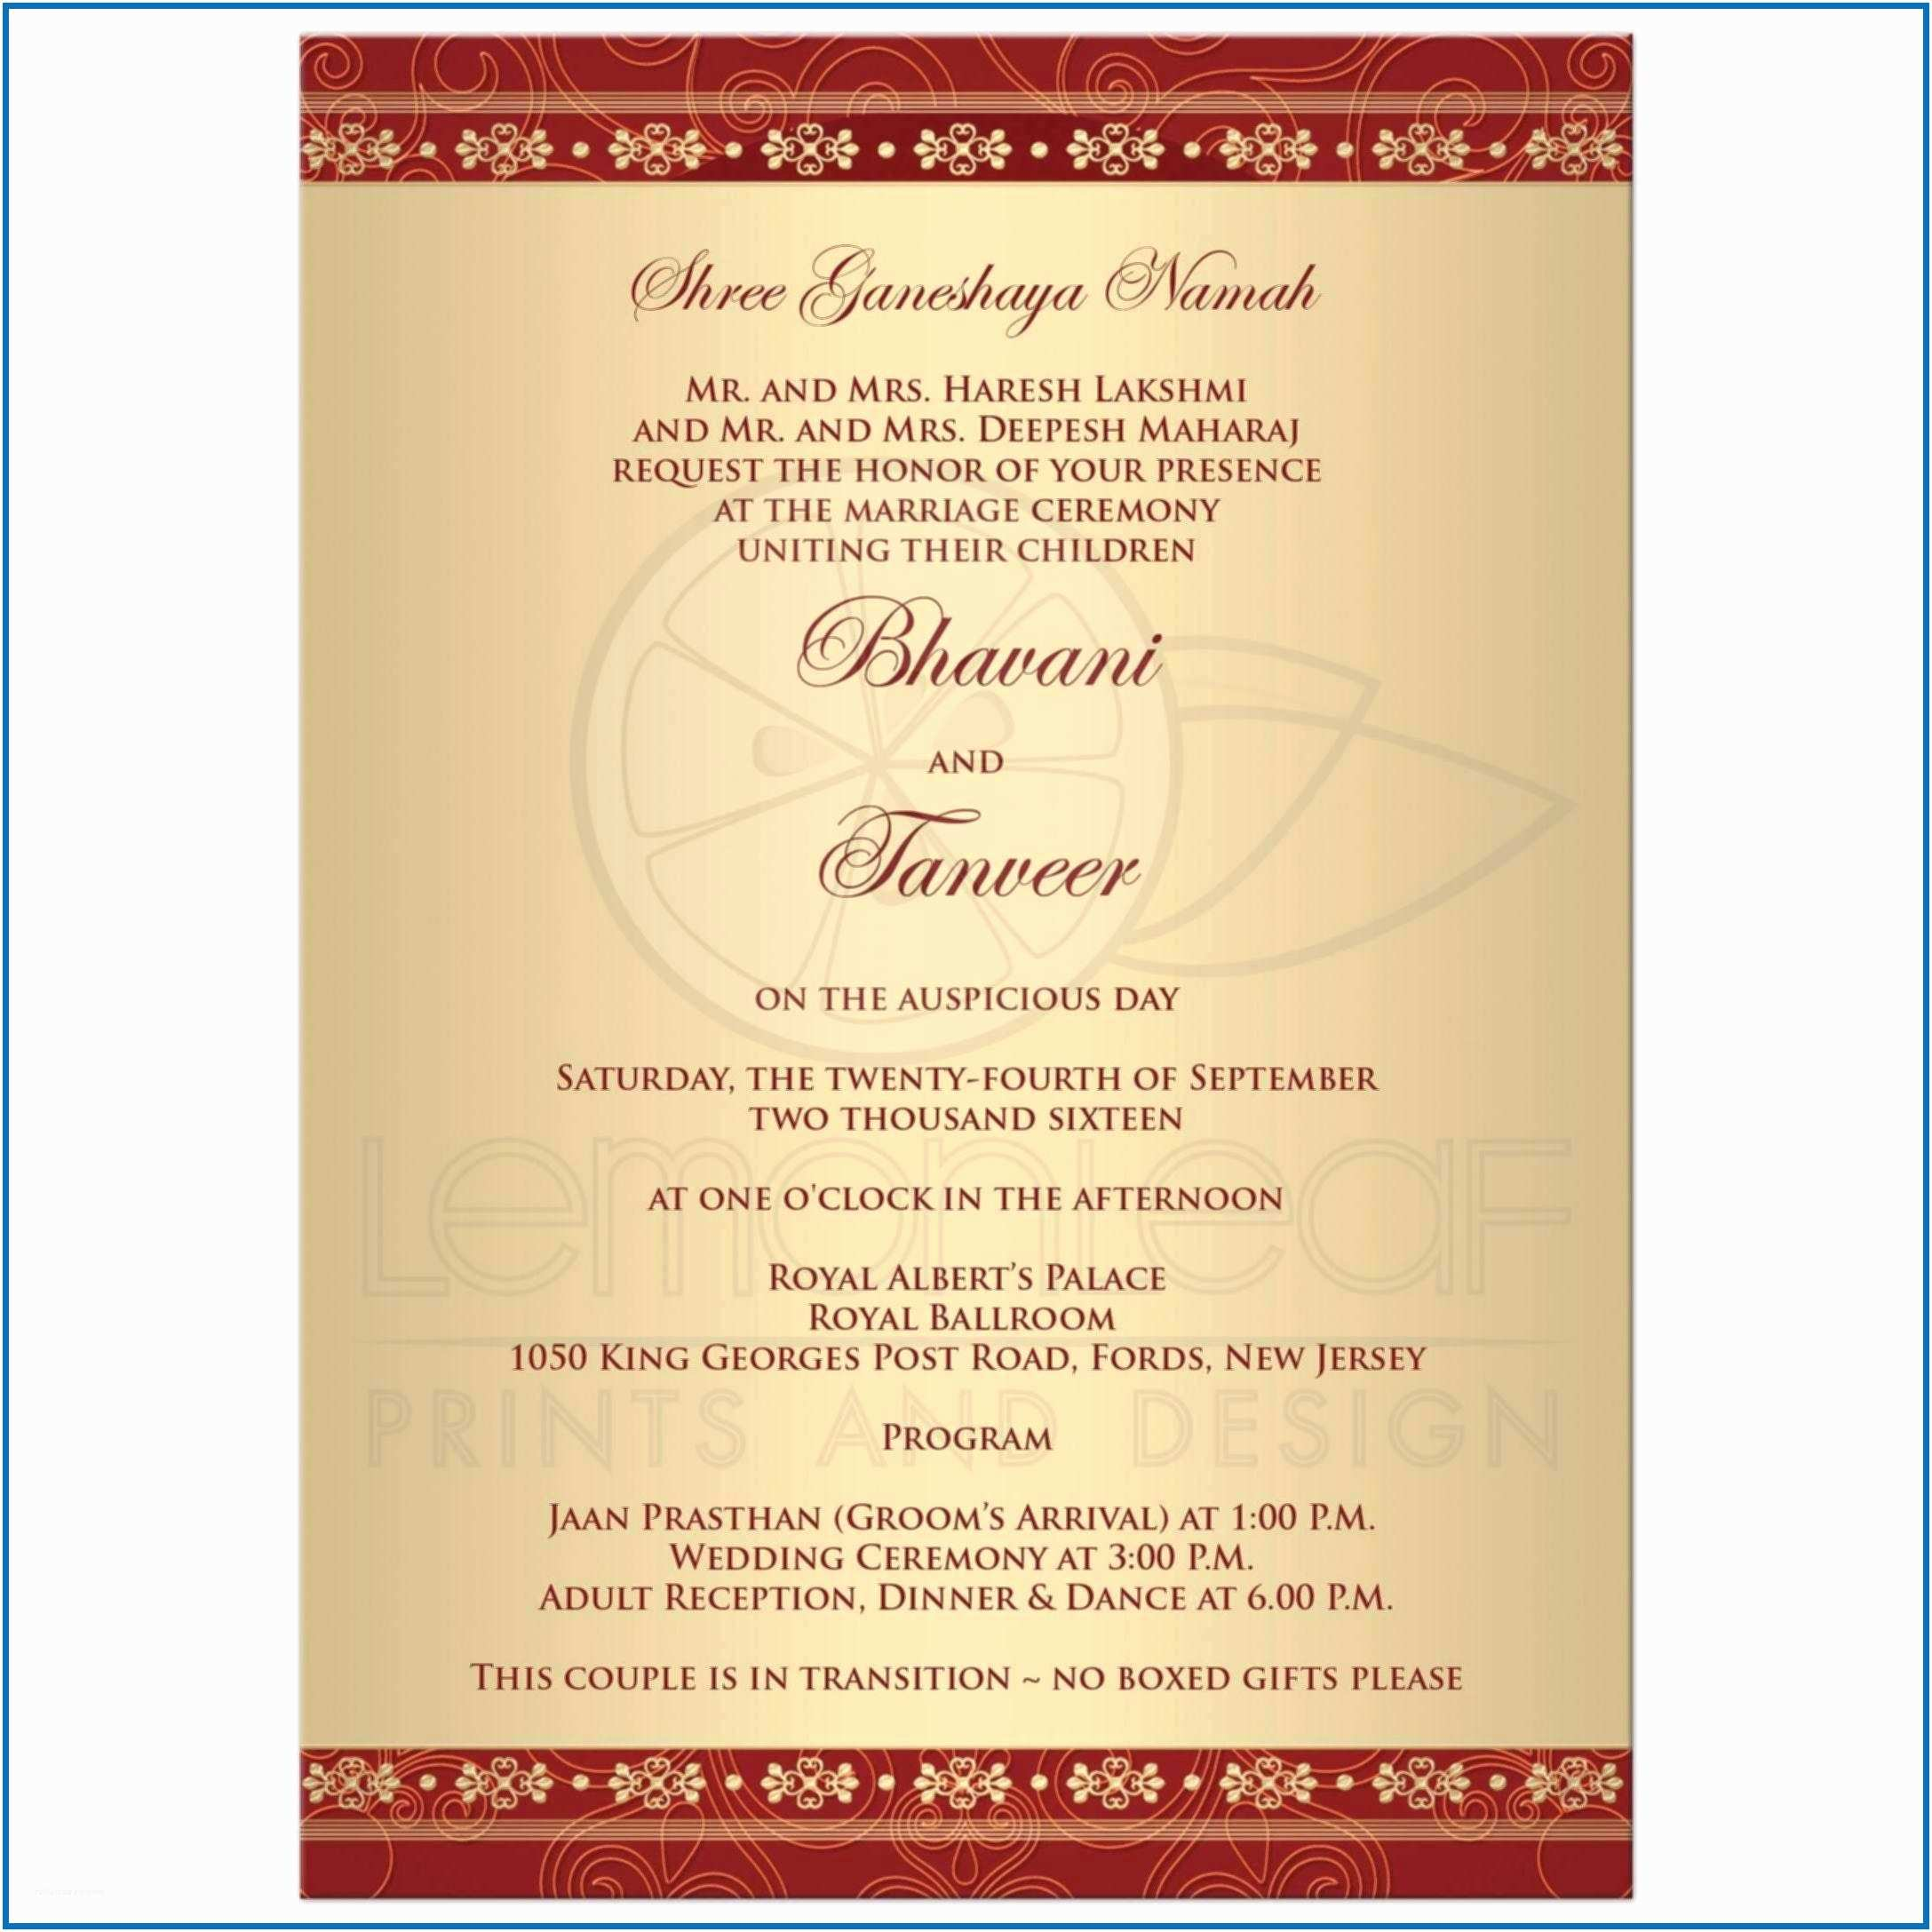 Wedding Invitation Wording Indian Bride and Groom Invitation for Wedding Sample Kerala Hindu Wedding